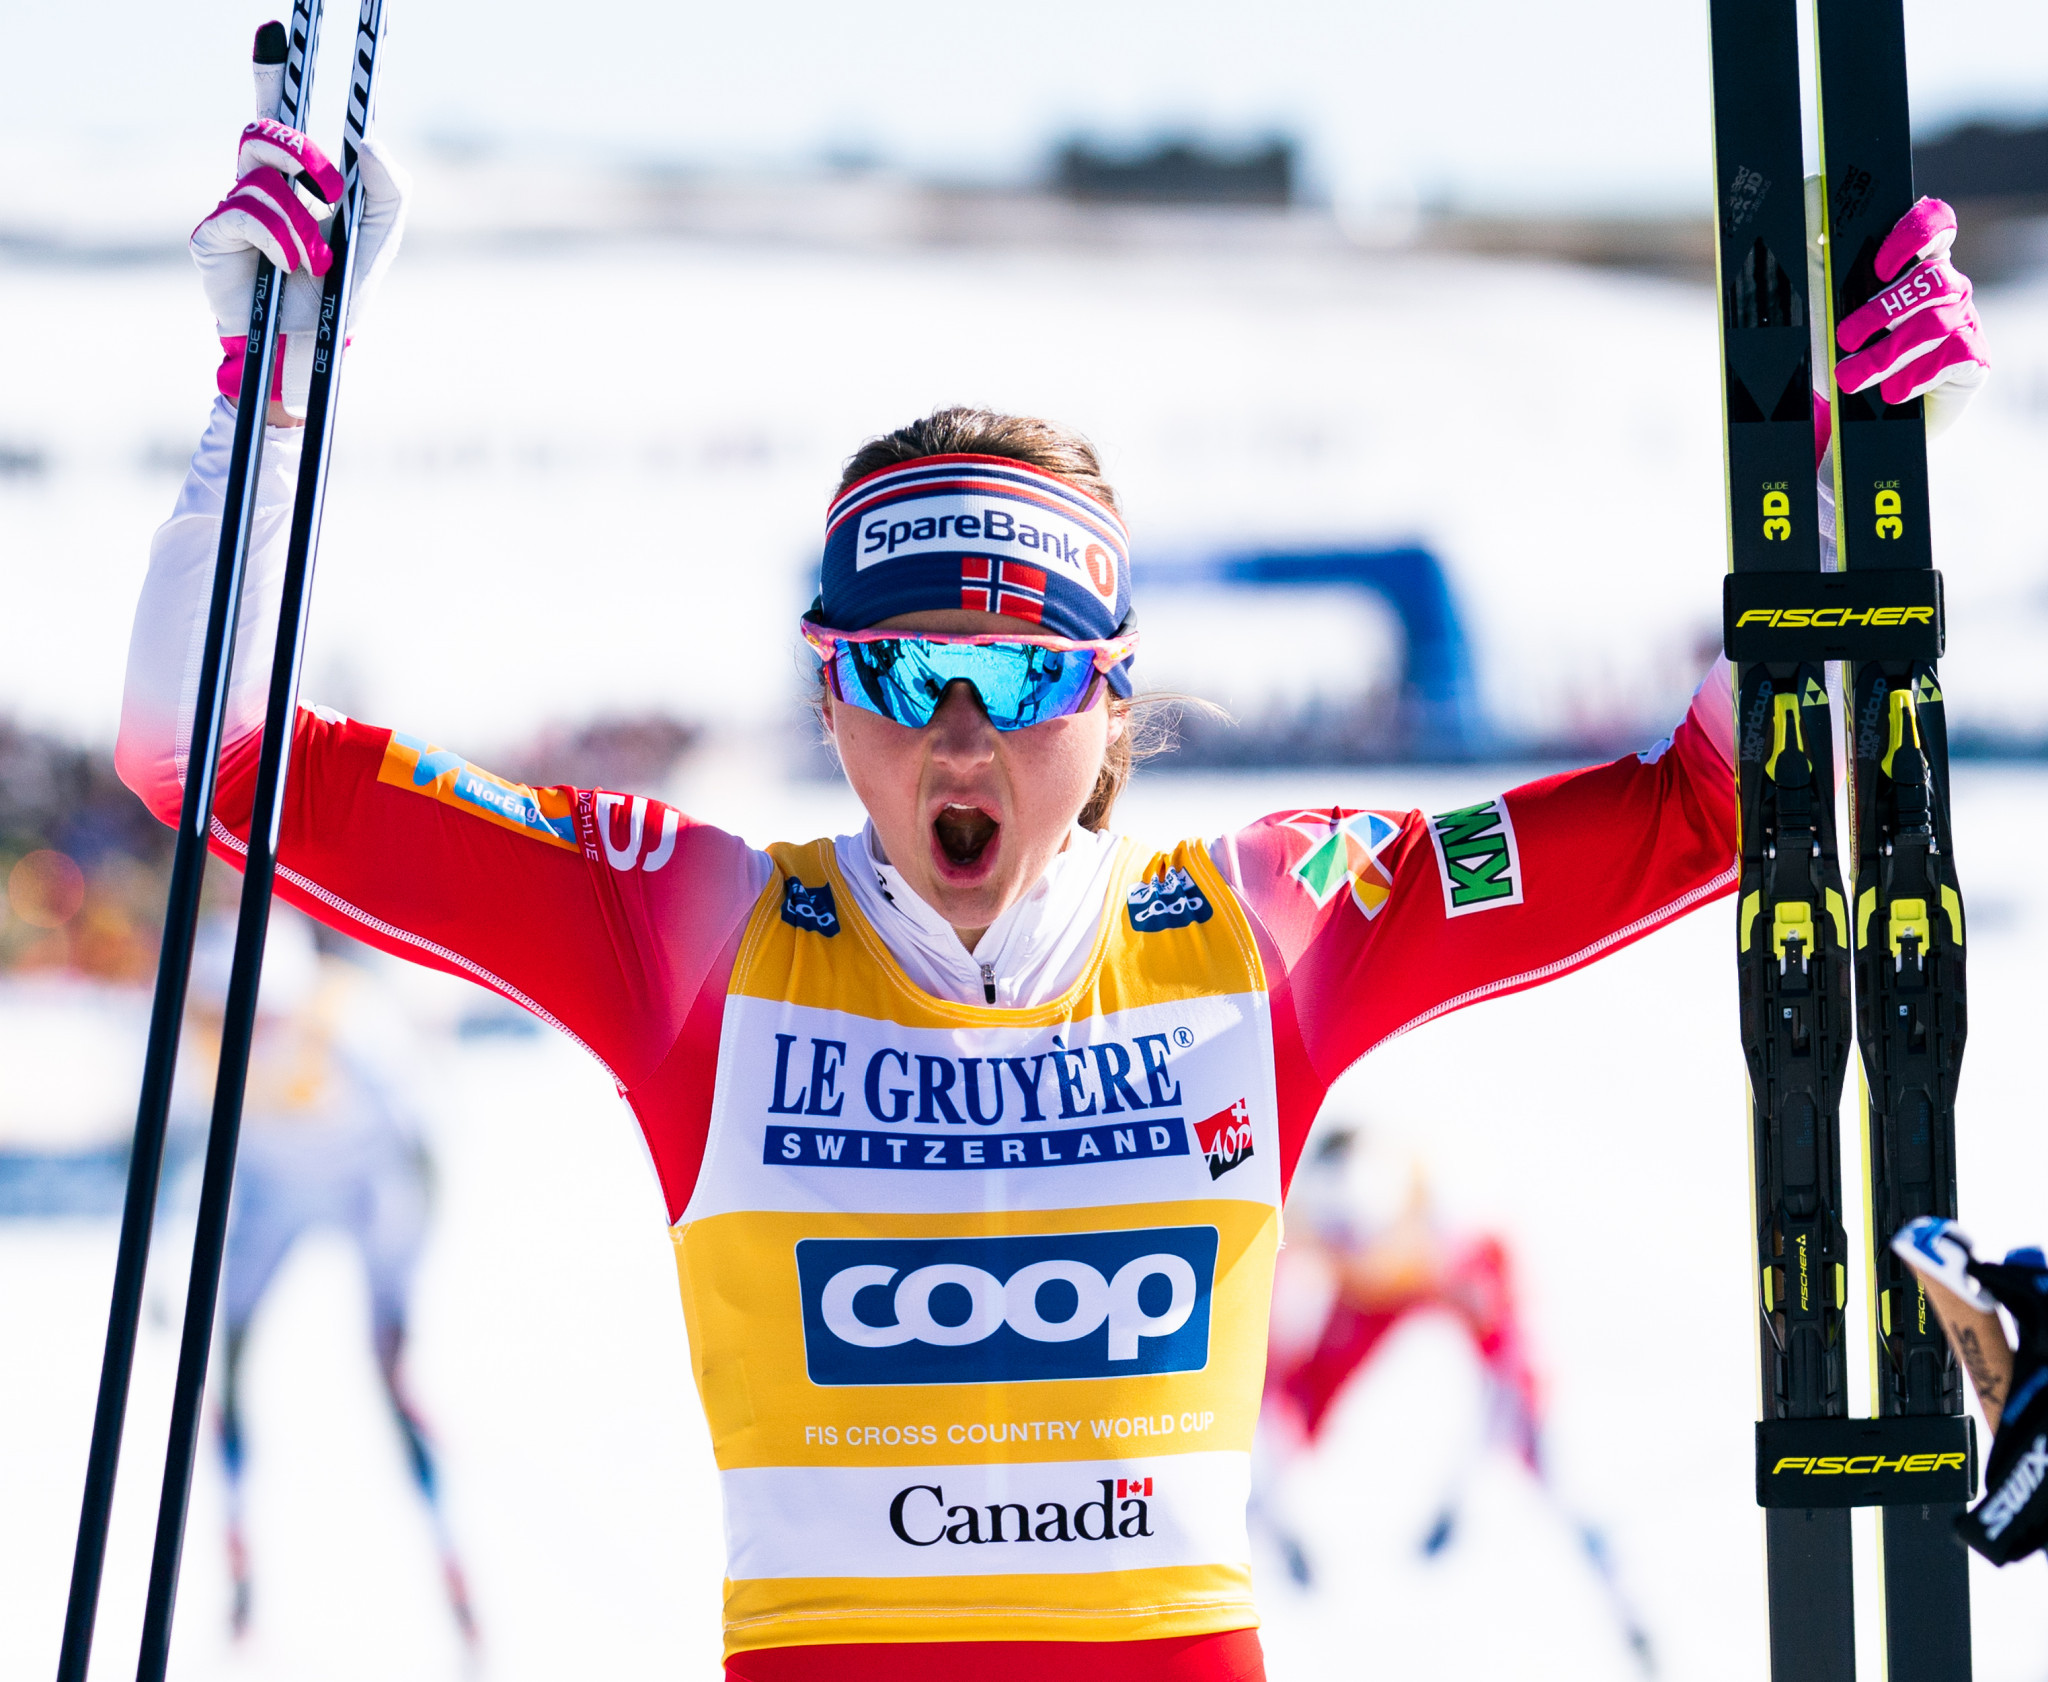 Østberg tops podium of fourth stage of Tour de Ski